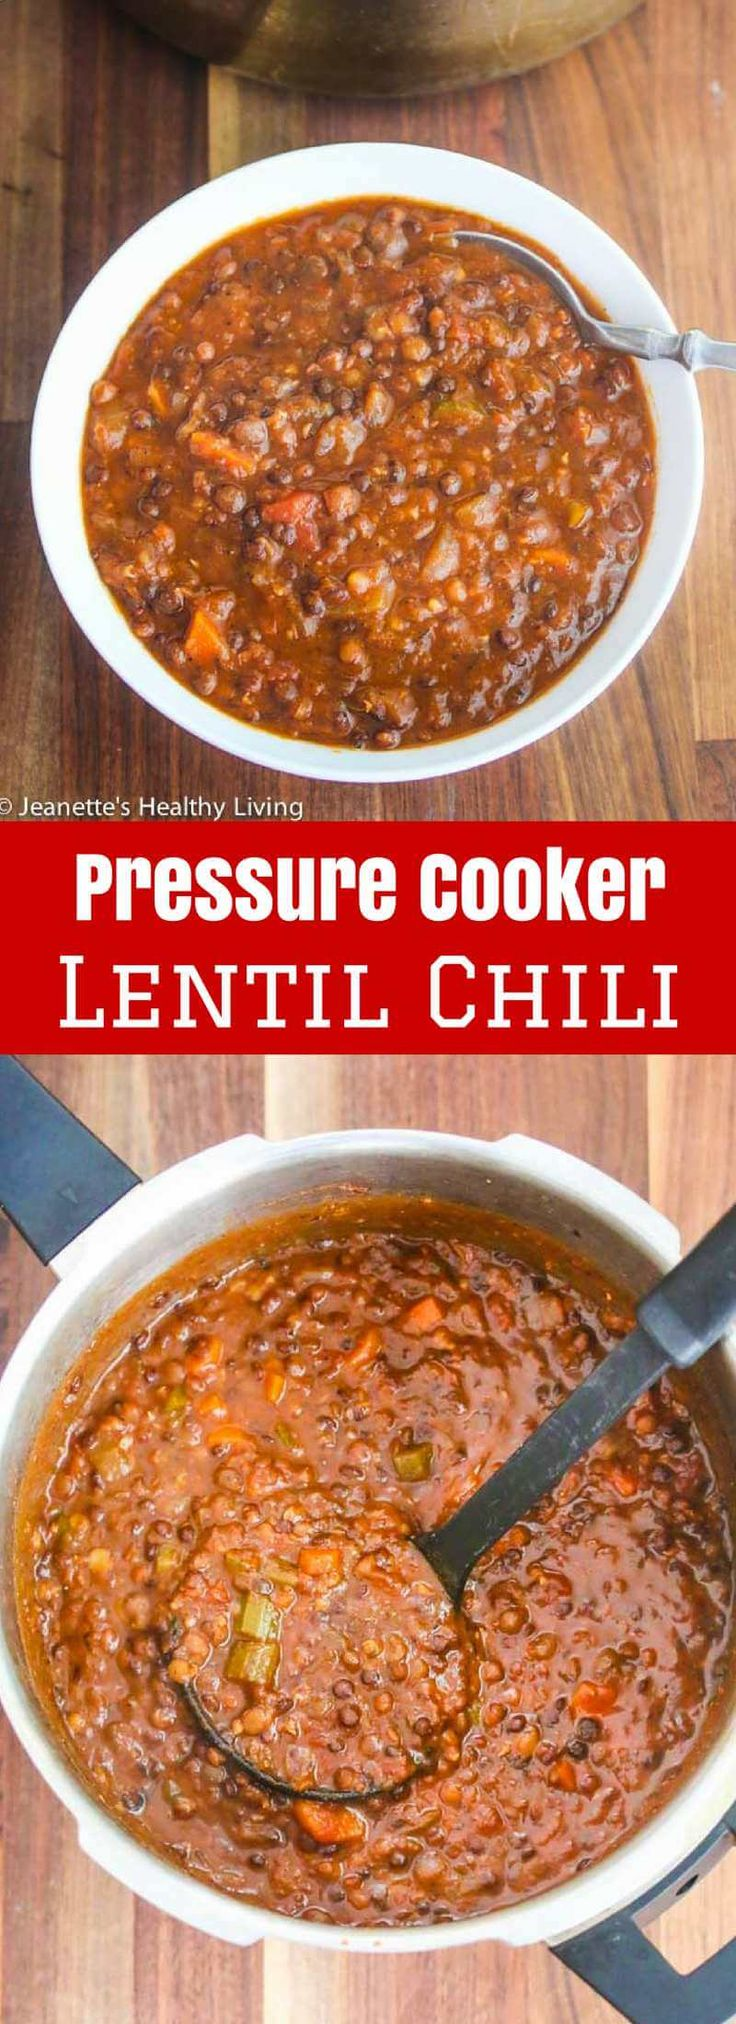 Pressure Cooker Lentil Chili - 300 calories/18 grams protein per serving ~ lentils take just 14 minutes to cook in a pressure cooker - this vegetarian/vegan chili is deliciously hearty ~ http://jeanetteshealthyliving.com